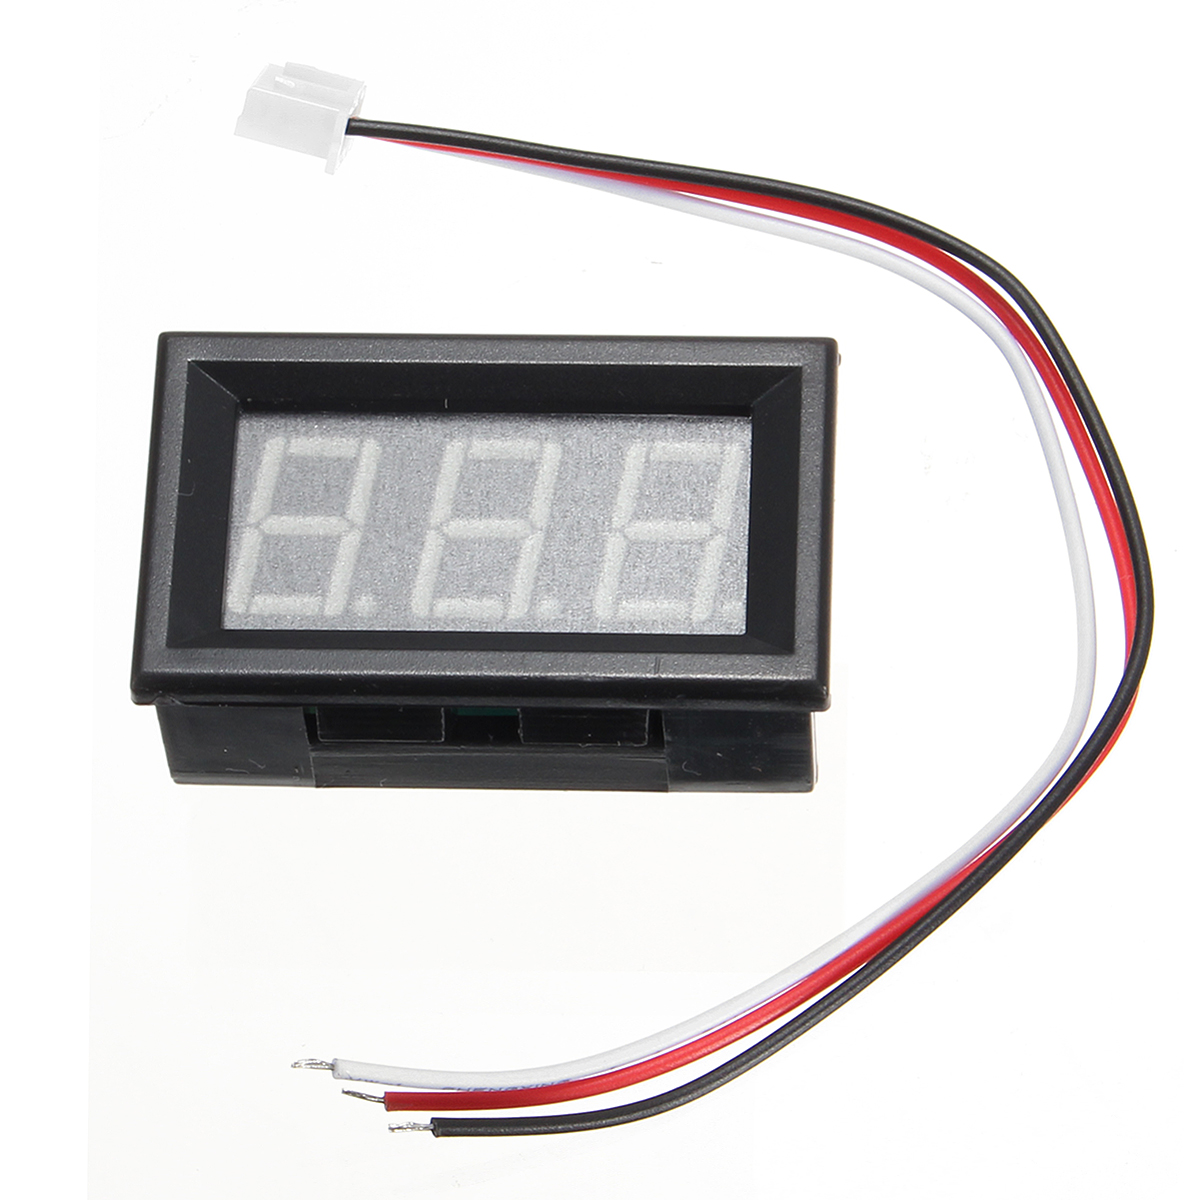 DC 0-100V Blue LED Digital Mini Voltmeter Gauge Voltage Panel Meter